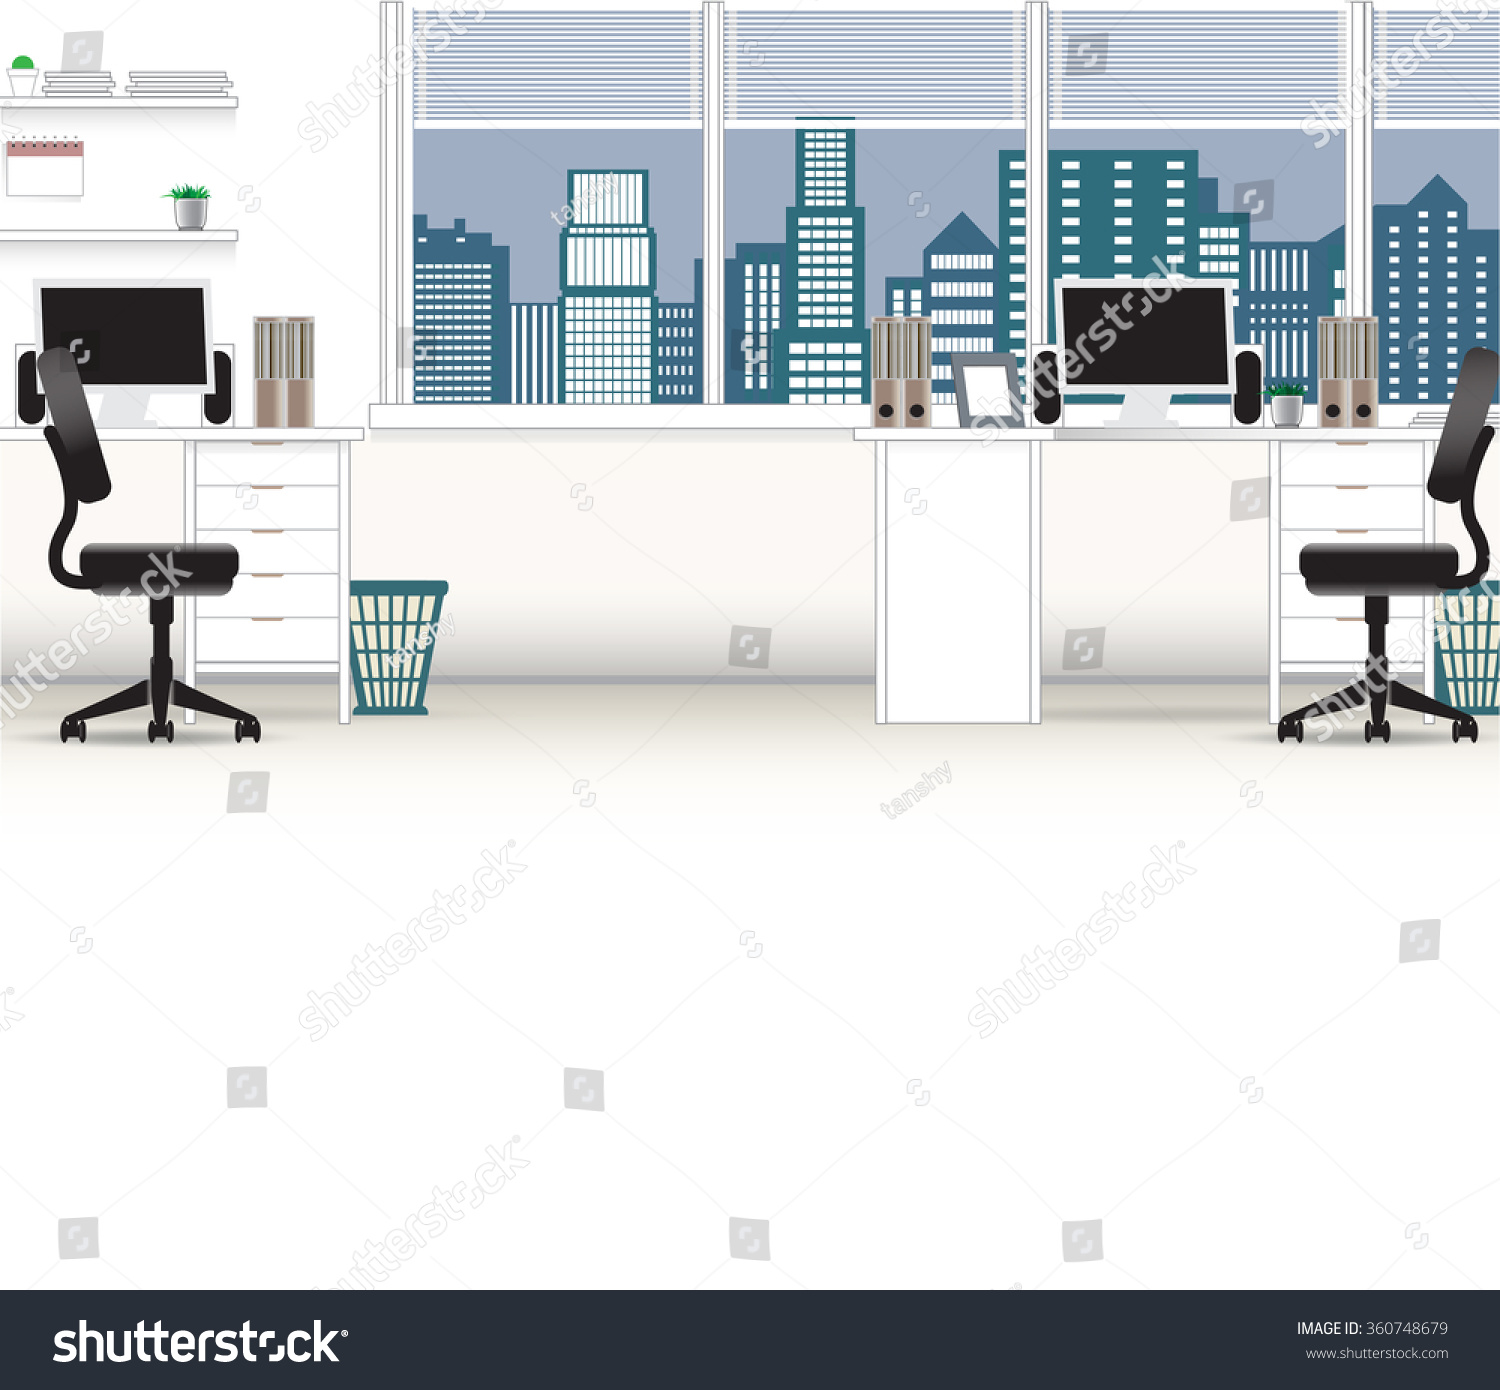 office interior vector business background tables chairs computer desk desktop window